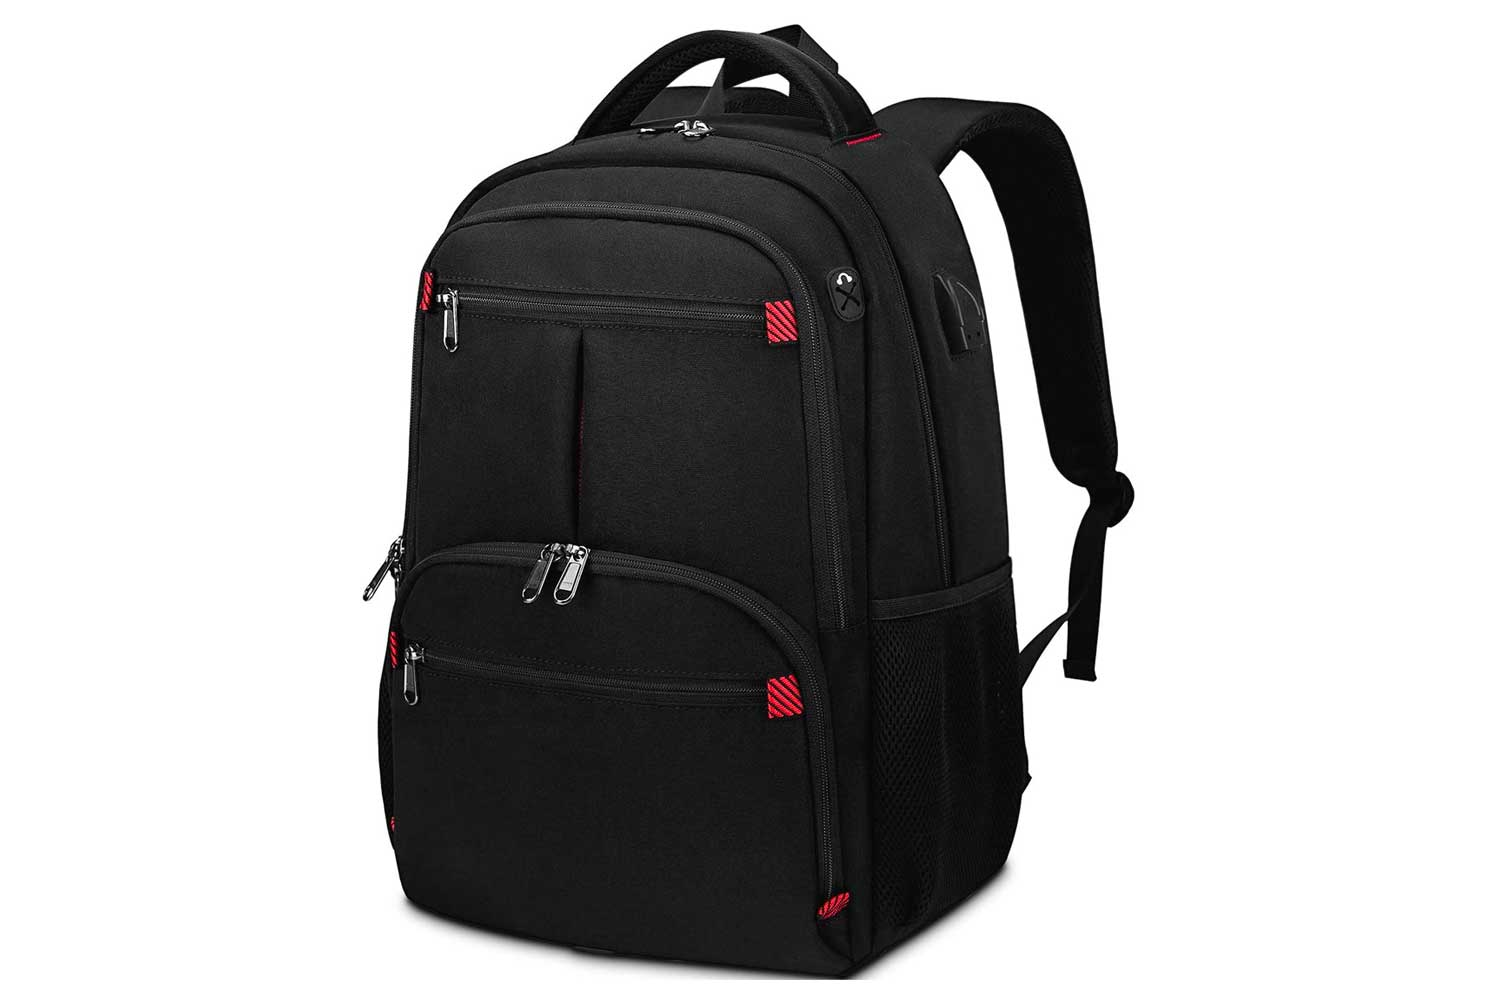 Travel Laptop Backpack Business Water Resistant Lightweight School Backpack with USB Charging Port 15.6 Inch Slim College Backpack for Men Women Computer Notebook Bookbag black